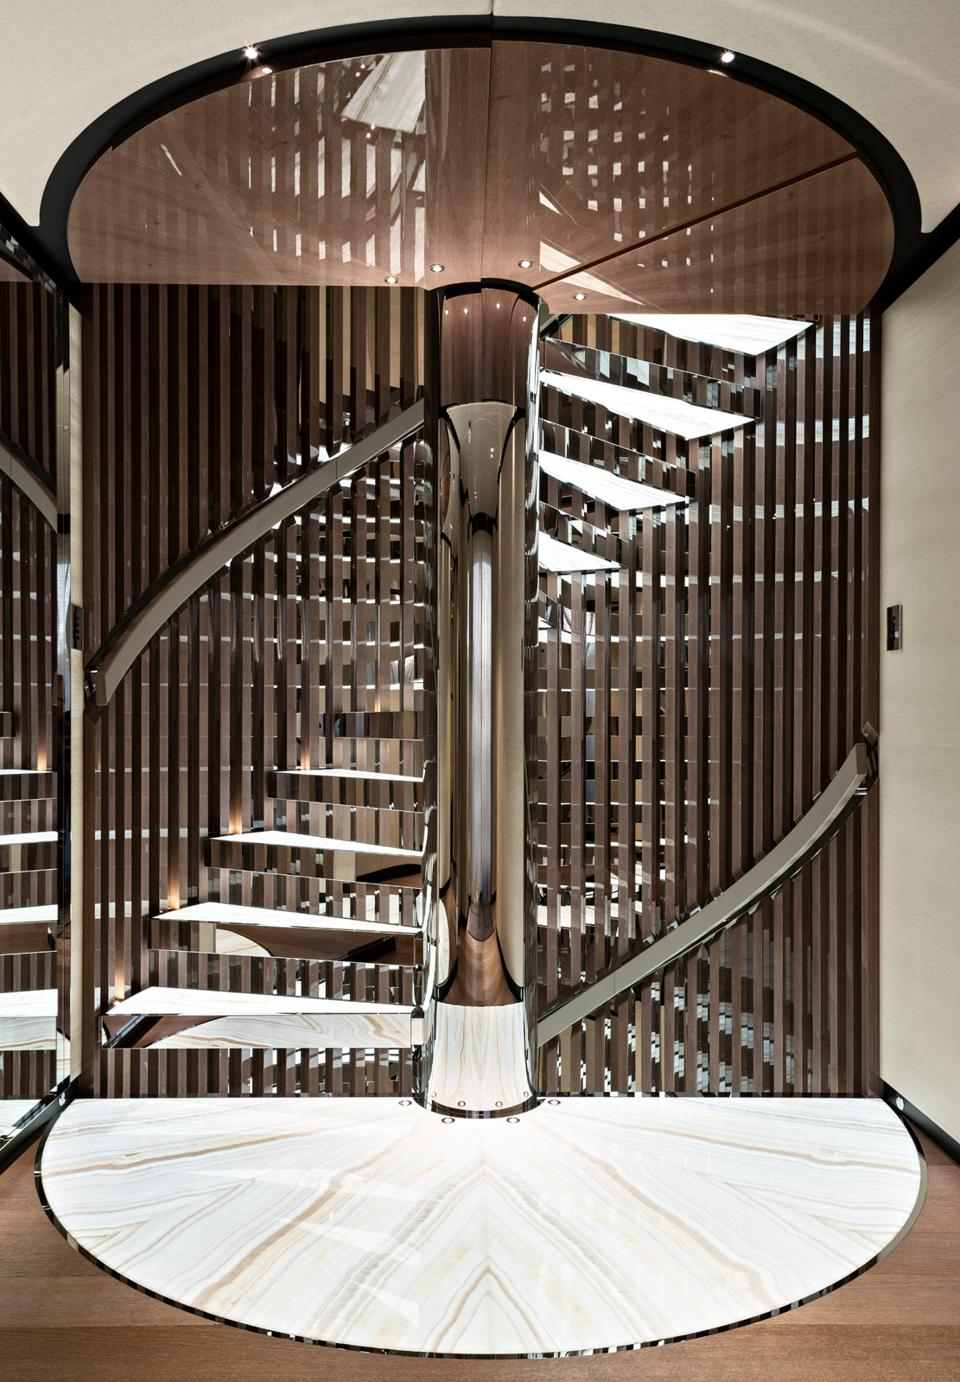 Exclusive photo of Vida superyacht's statement staircase.